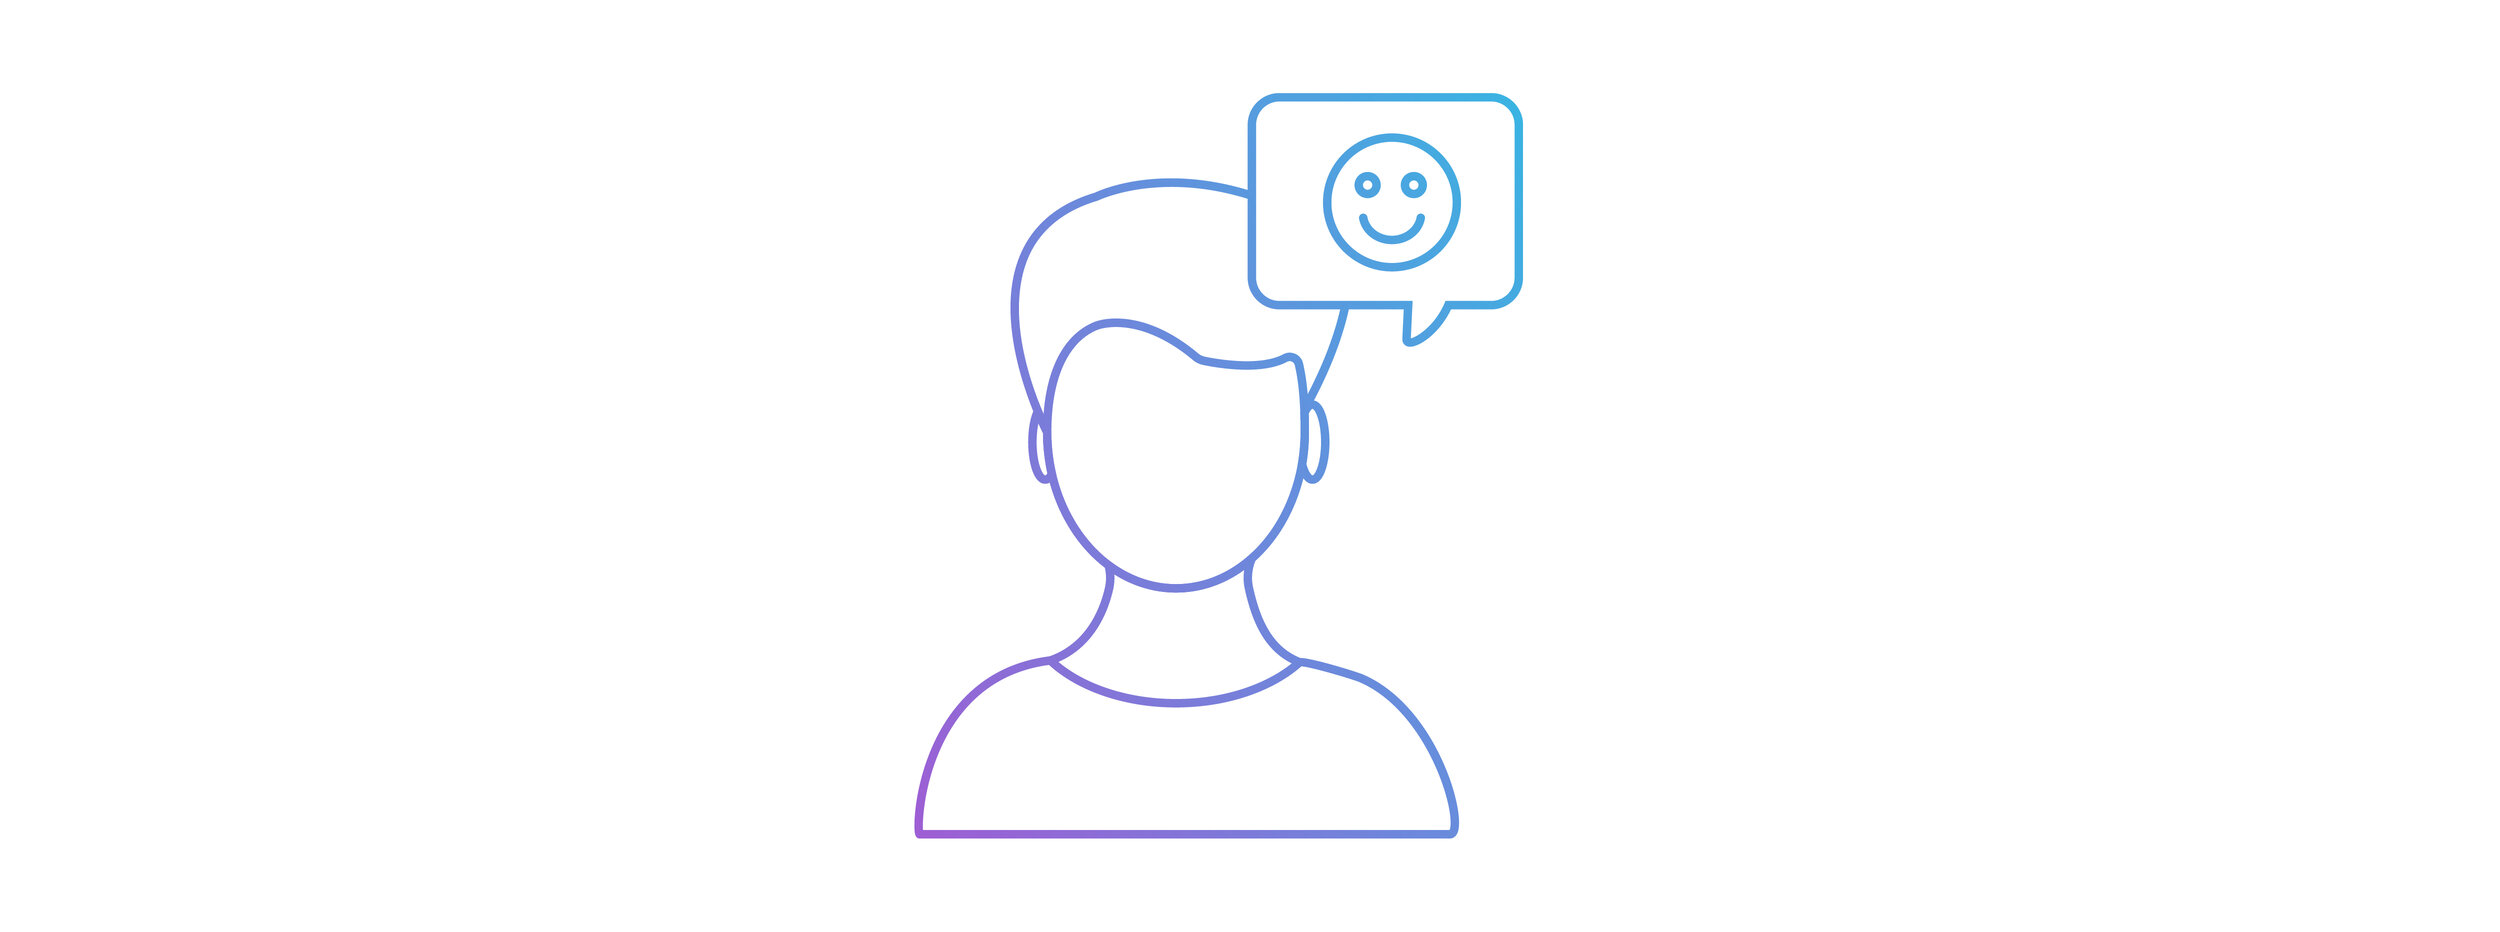 Marsello-created graphic. An outline of a person with a smiley-face in a conversation bubble.